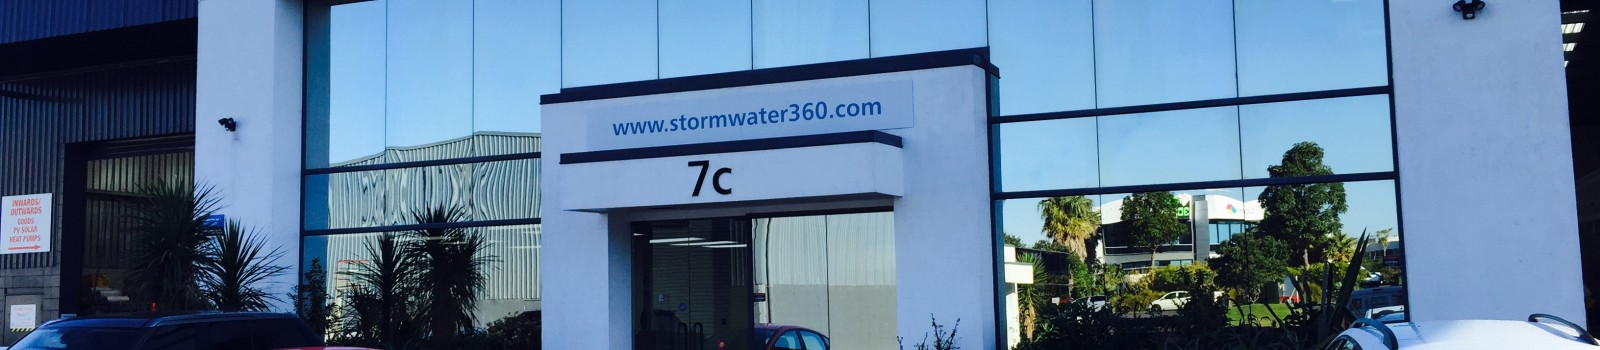 New premises for Stormwater360